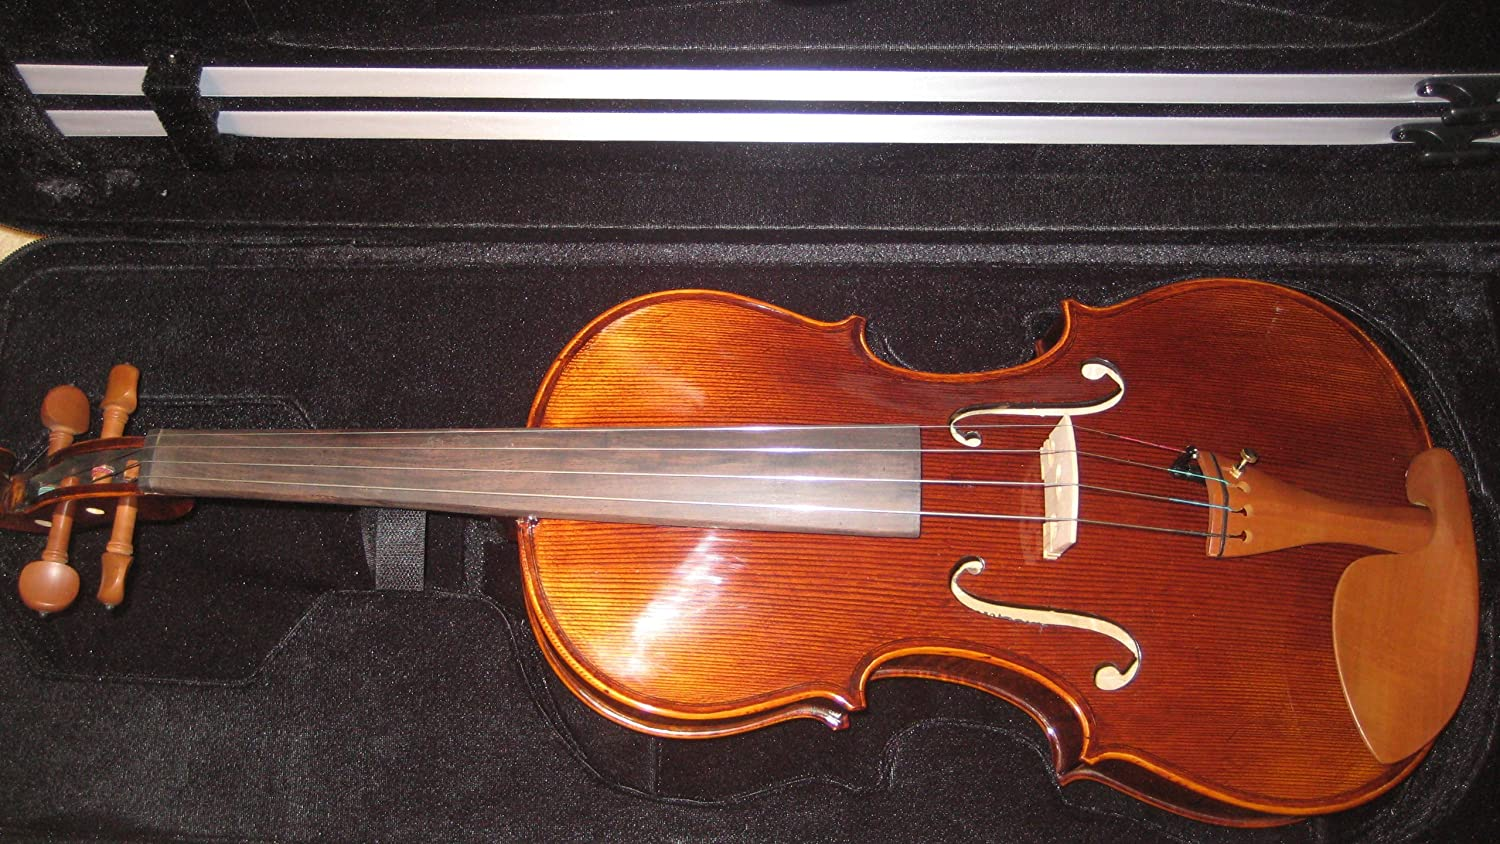 Advanced Viola, Outstanding Varnish & Tonality, 15.5